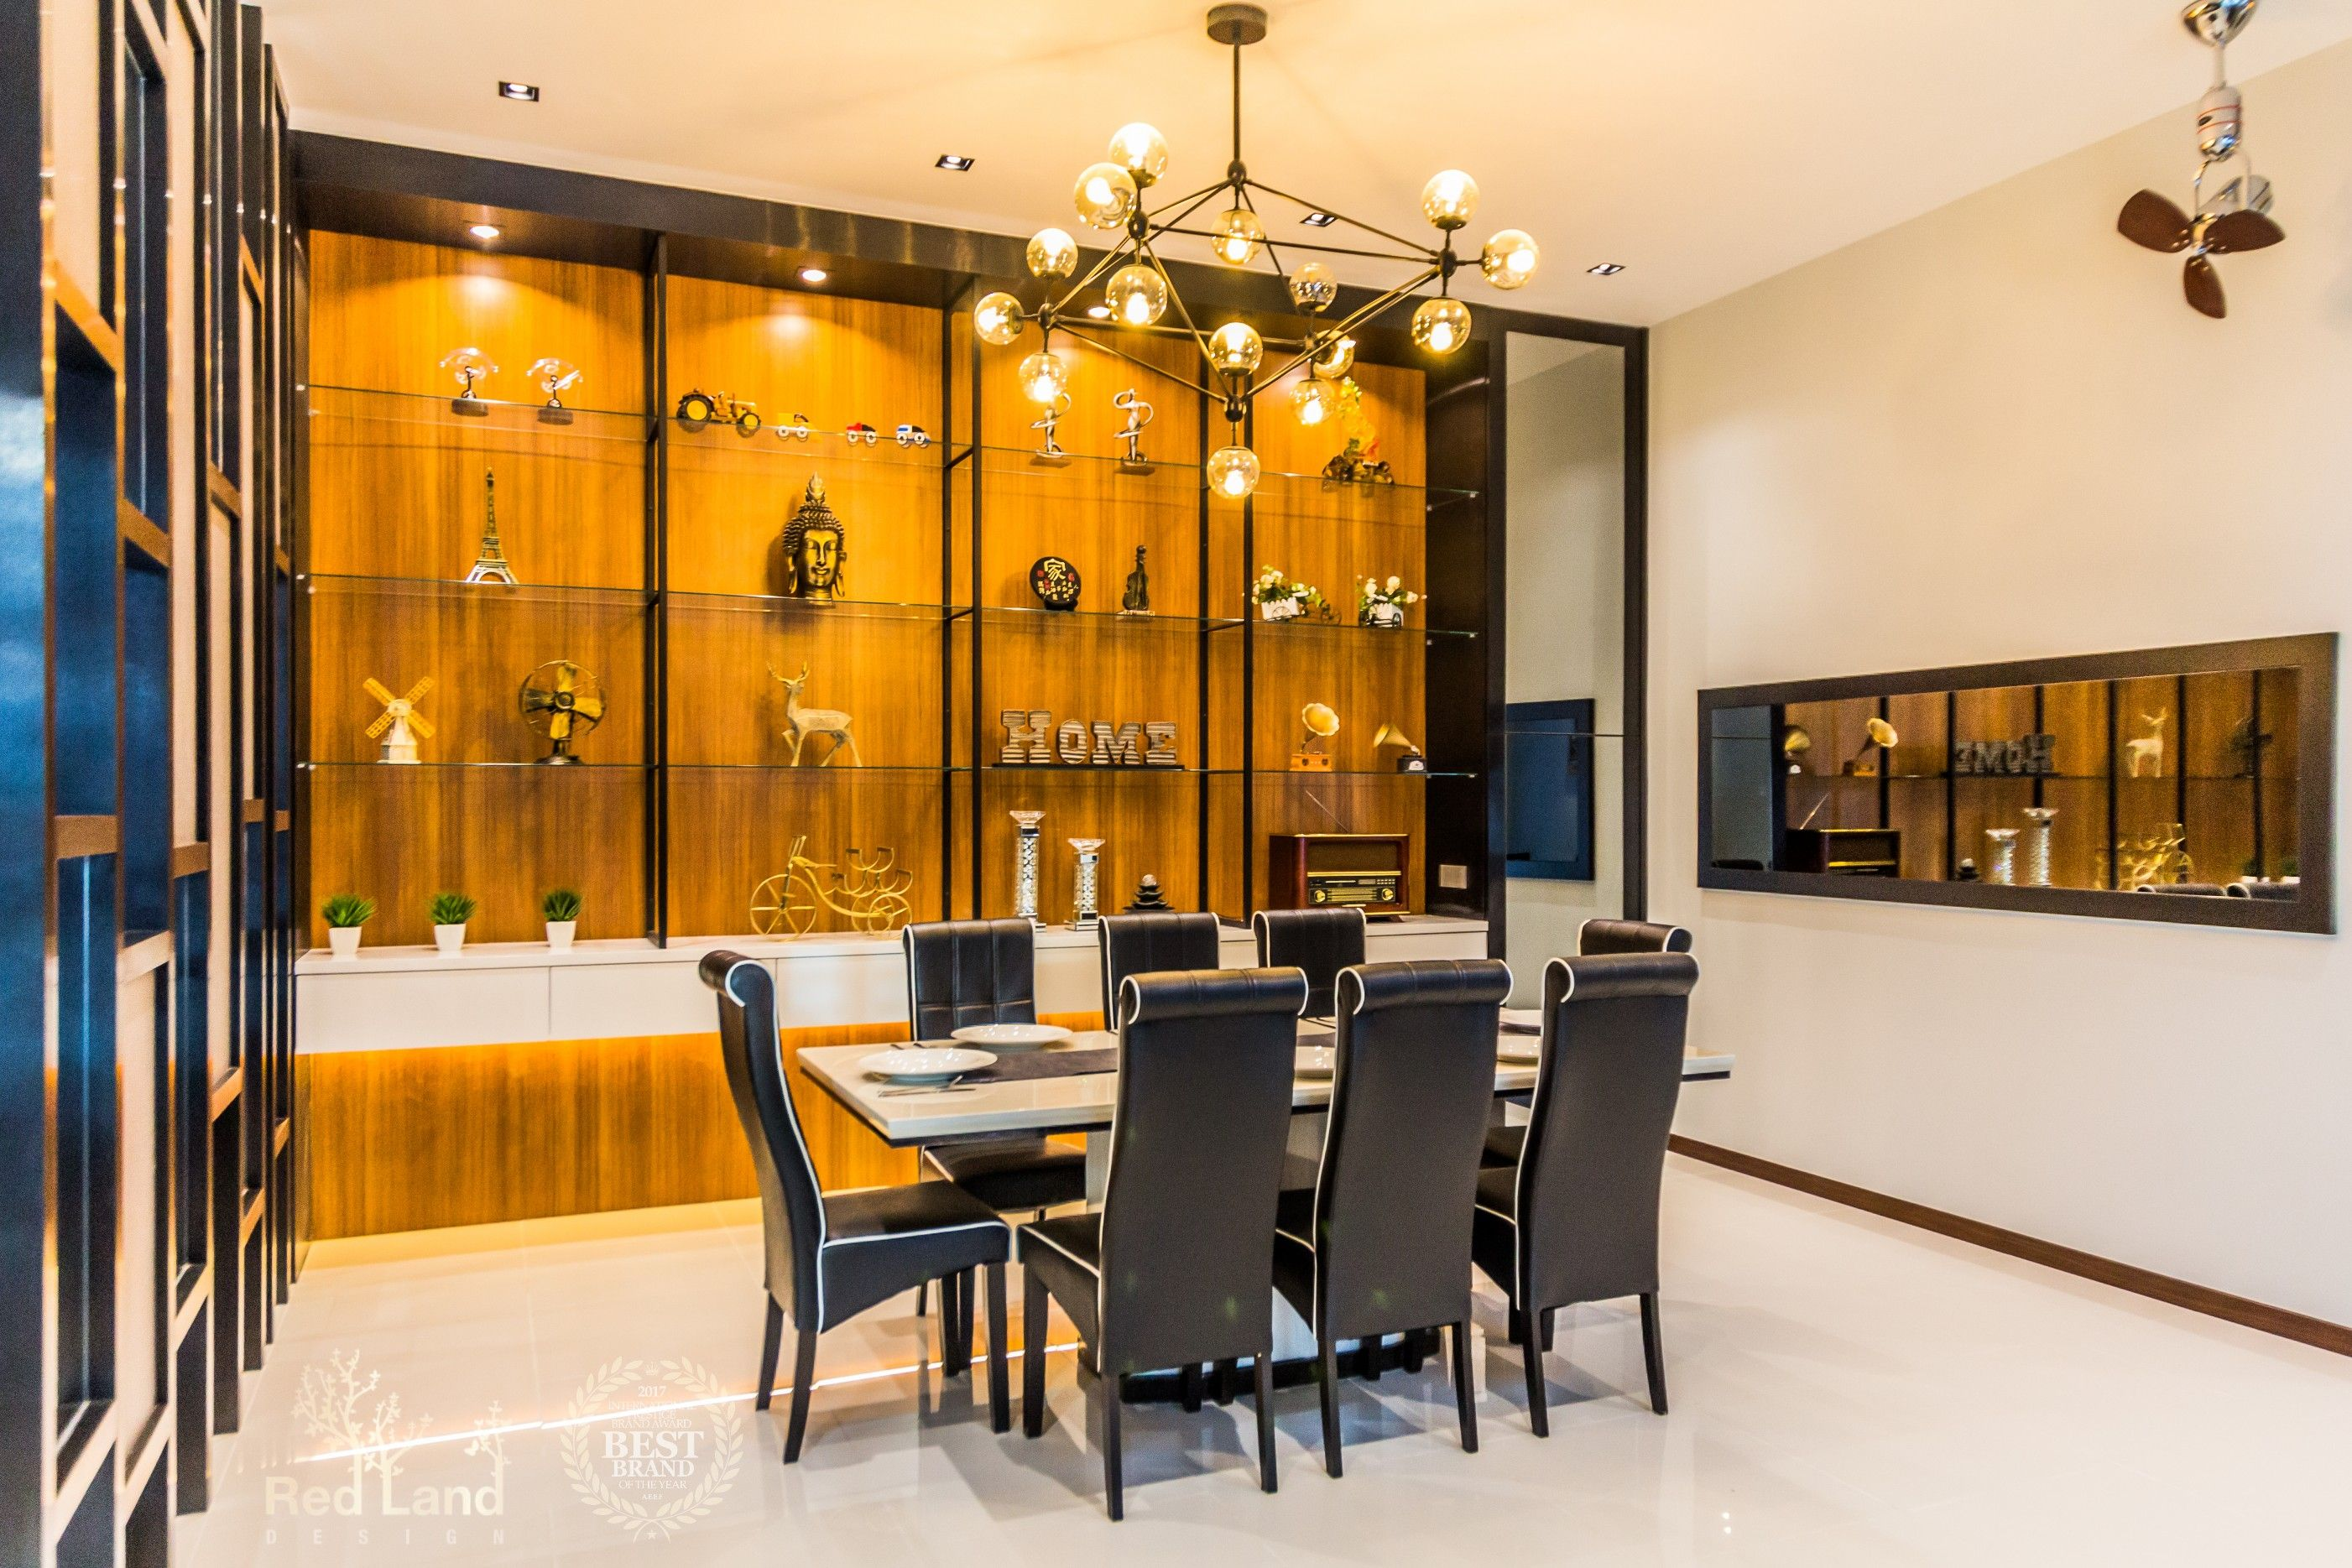 Feature Display Wall Laminate Backdrop Was Carefully Selected To Brought Up Luxury Result To Suits The Mode Dining Area Design Room Display Modern Contemporary